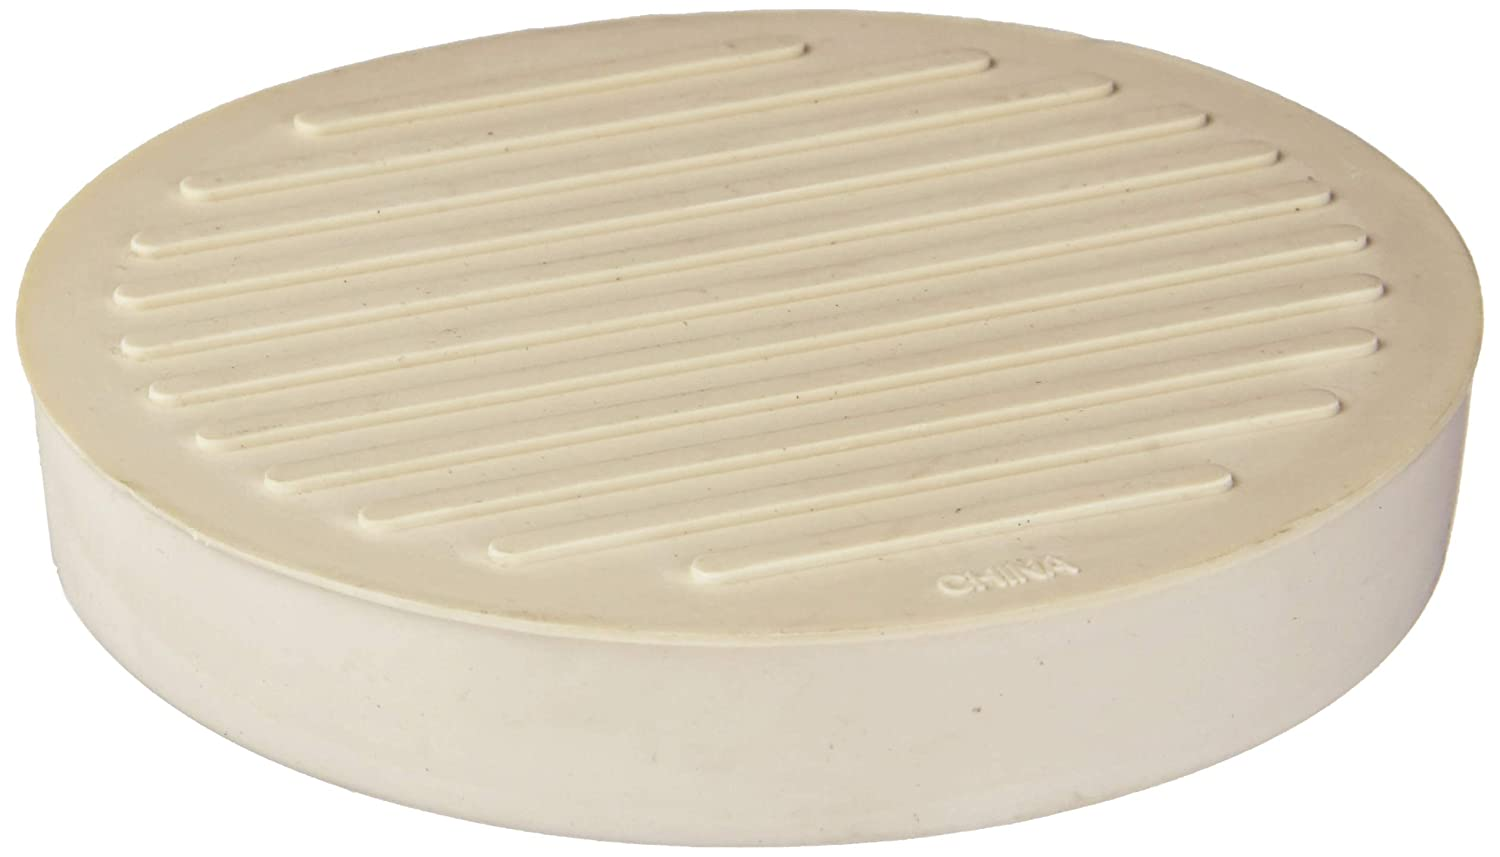 """Shepherd Hardware 9068 Round Rubber Furniture Cups (2 Pack), 3"""", Off White"""